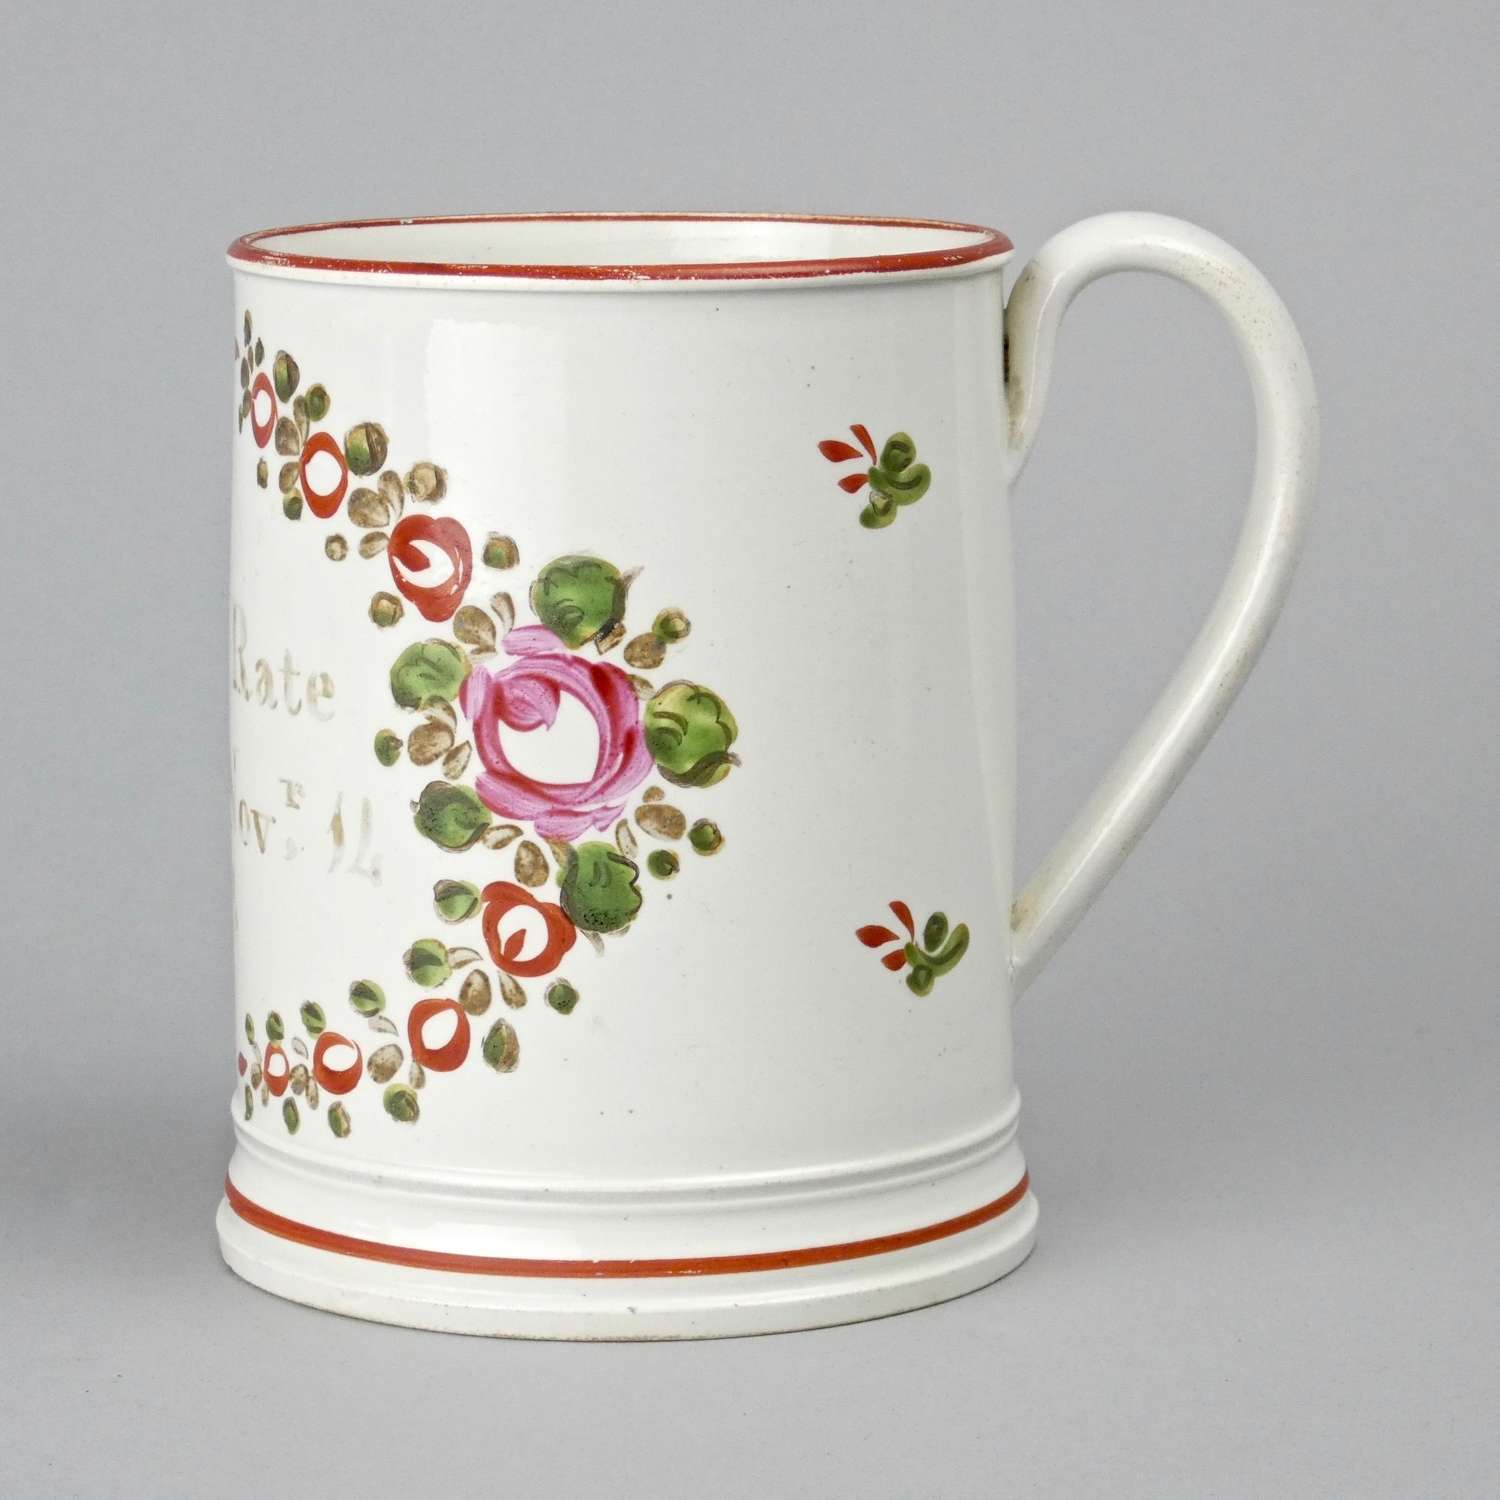 Named & dated, pearlware mug